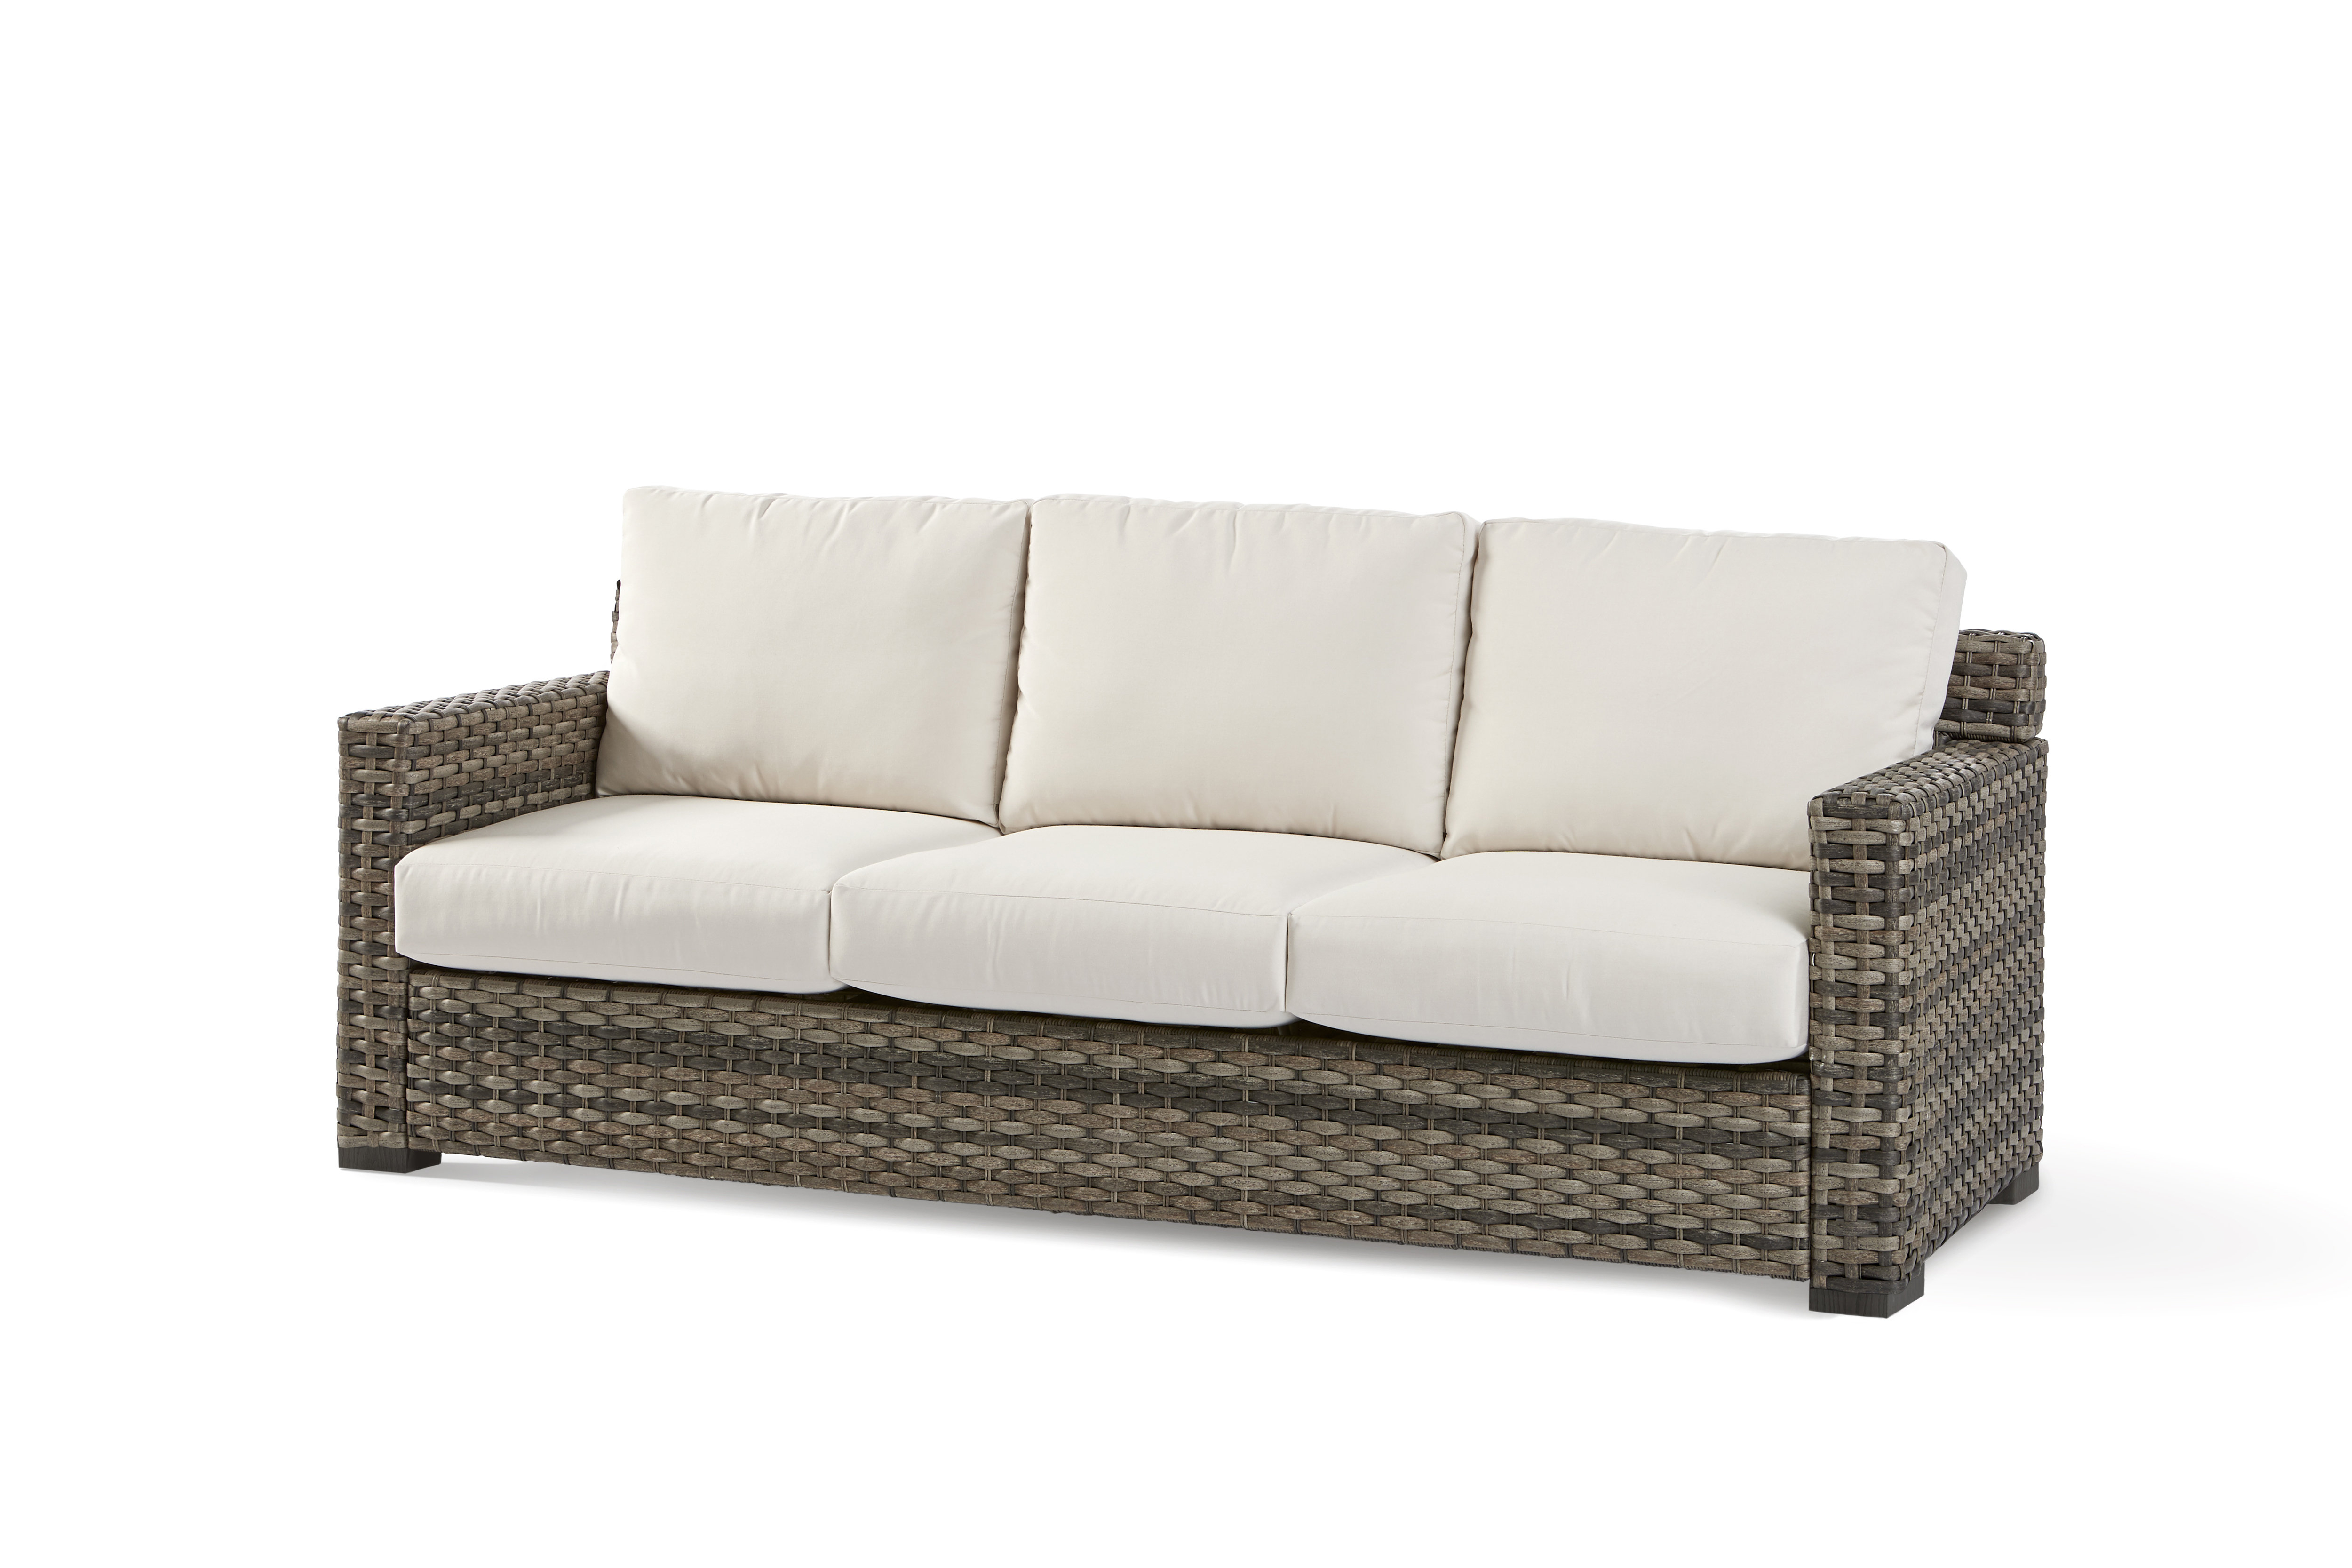 Fashionable Grosvenor Bamboo Patio Daybeds With Cushions Intended For Jakarta Patio Sofa With Sunbrella Cushion (View 2 of 20)